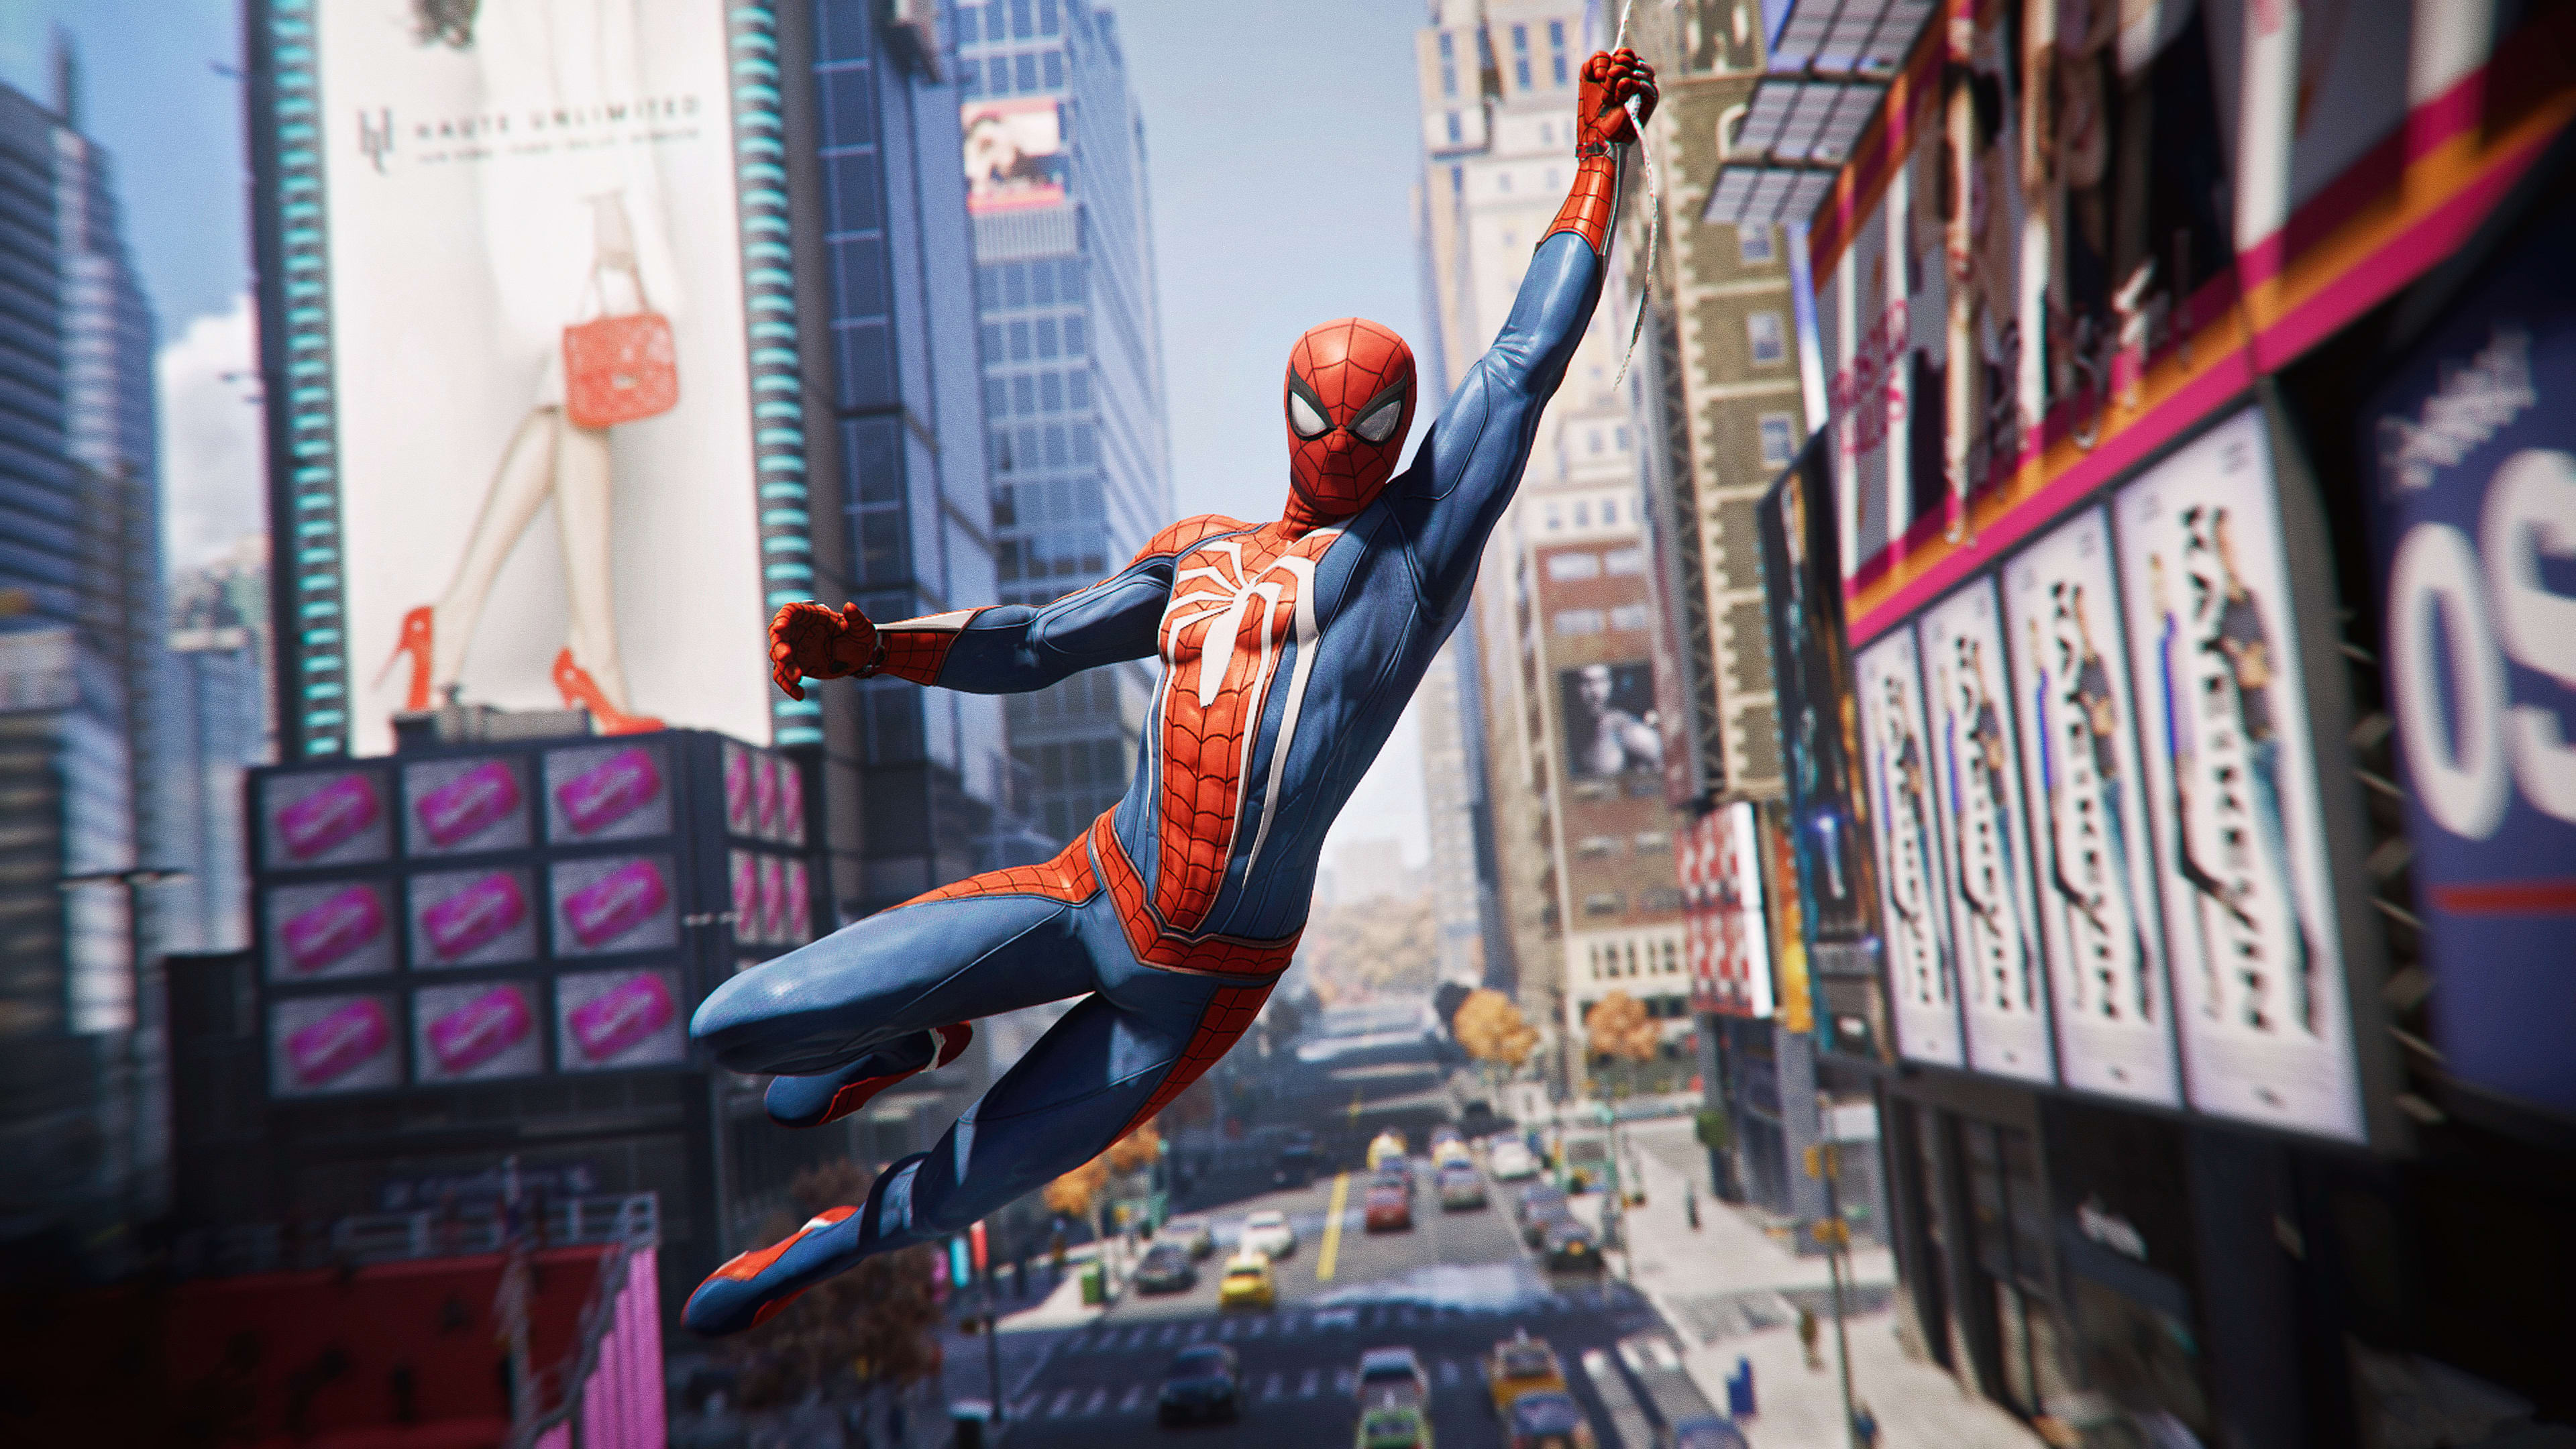 Spider Man Game 2018 Spiderman In Action Hd Wallpaper Download